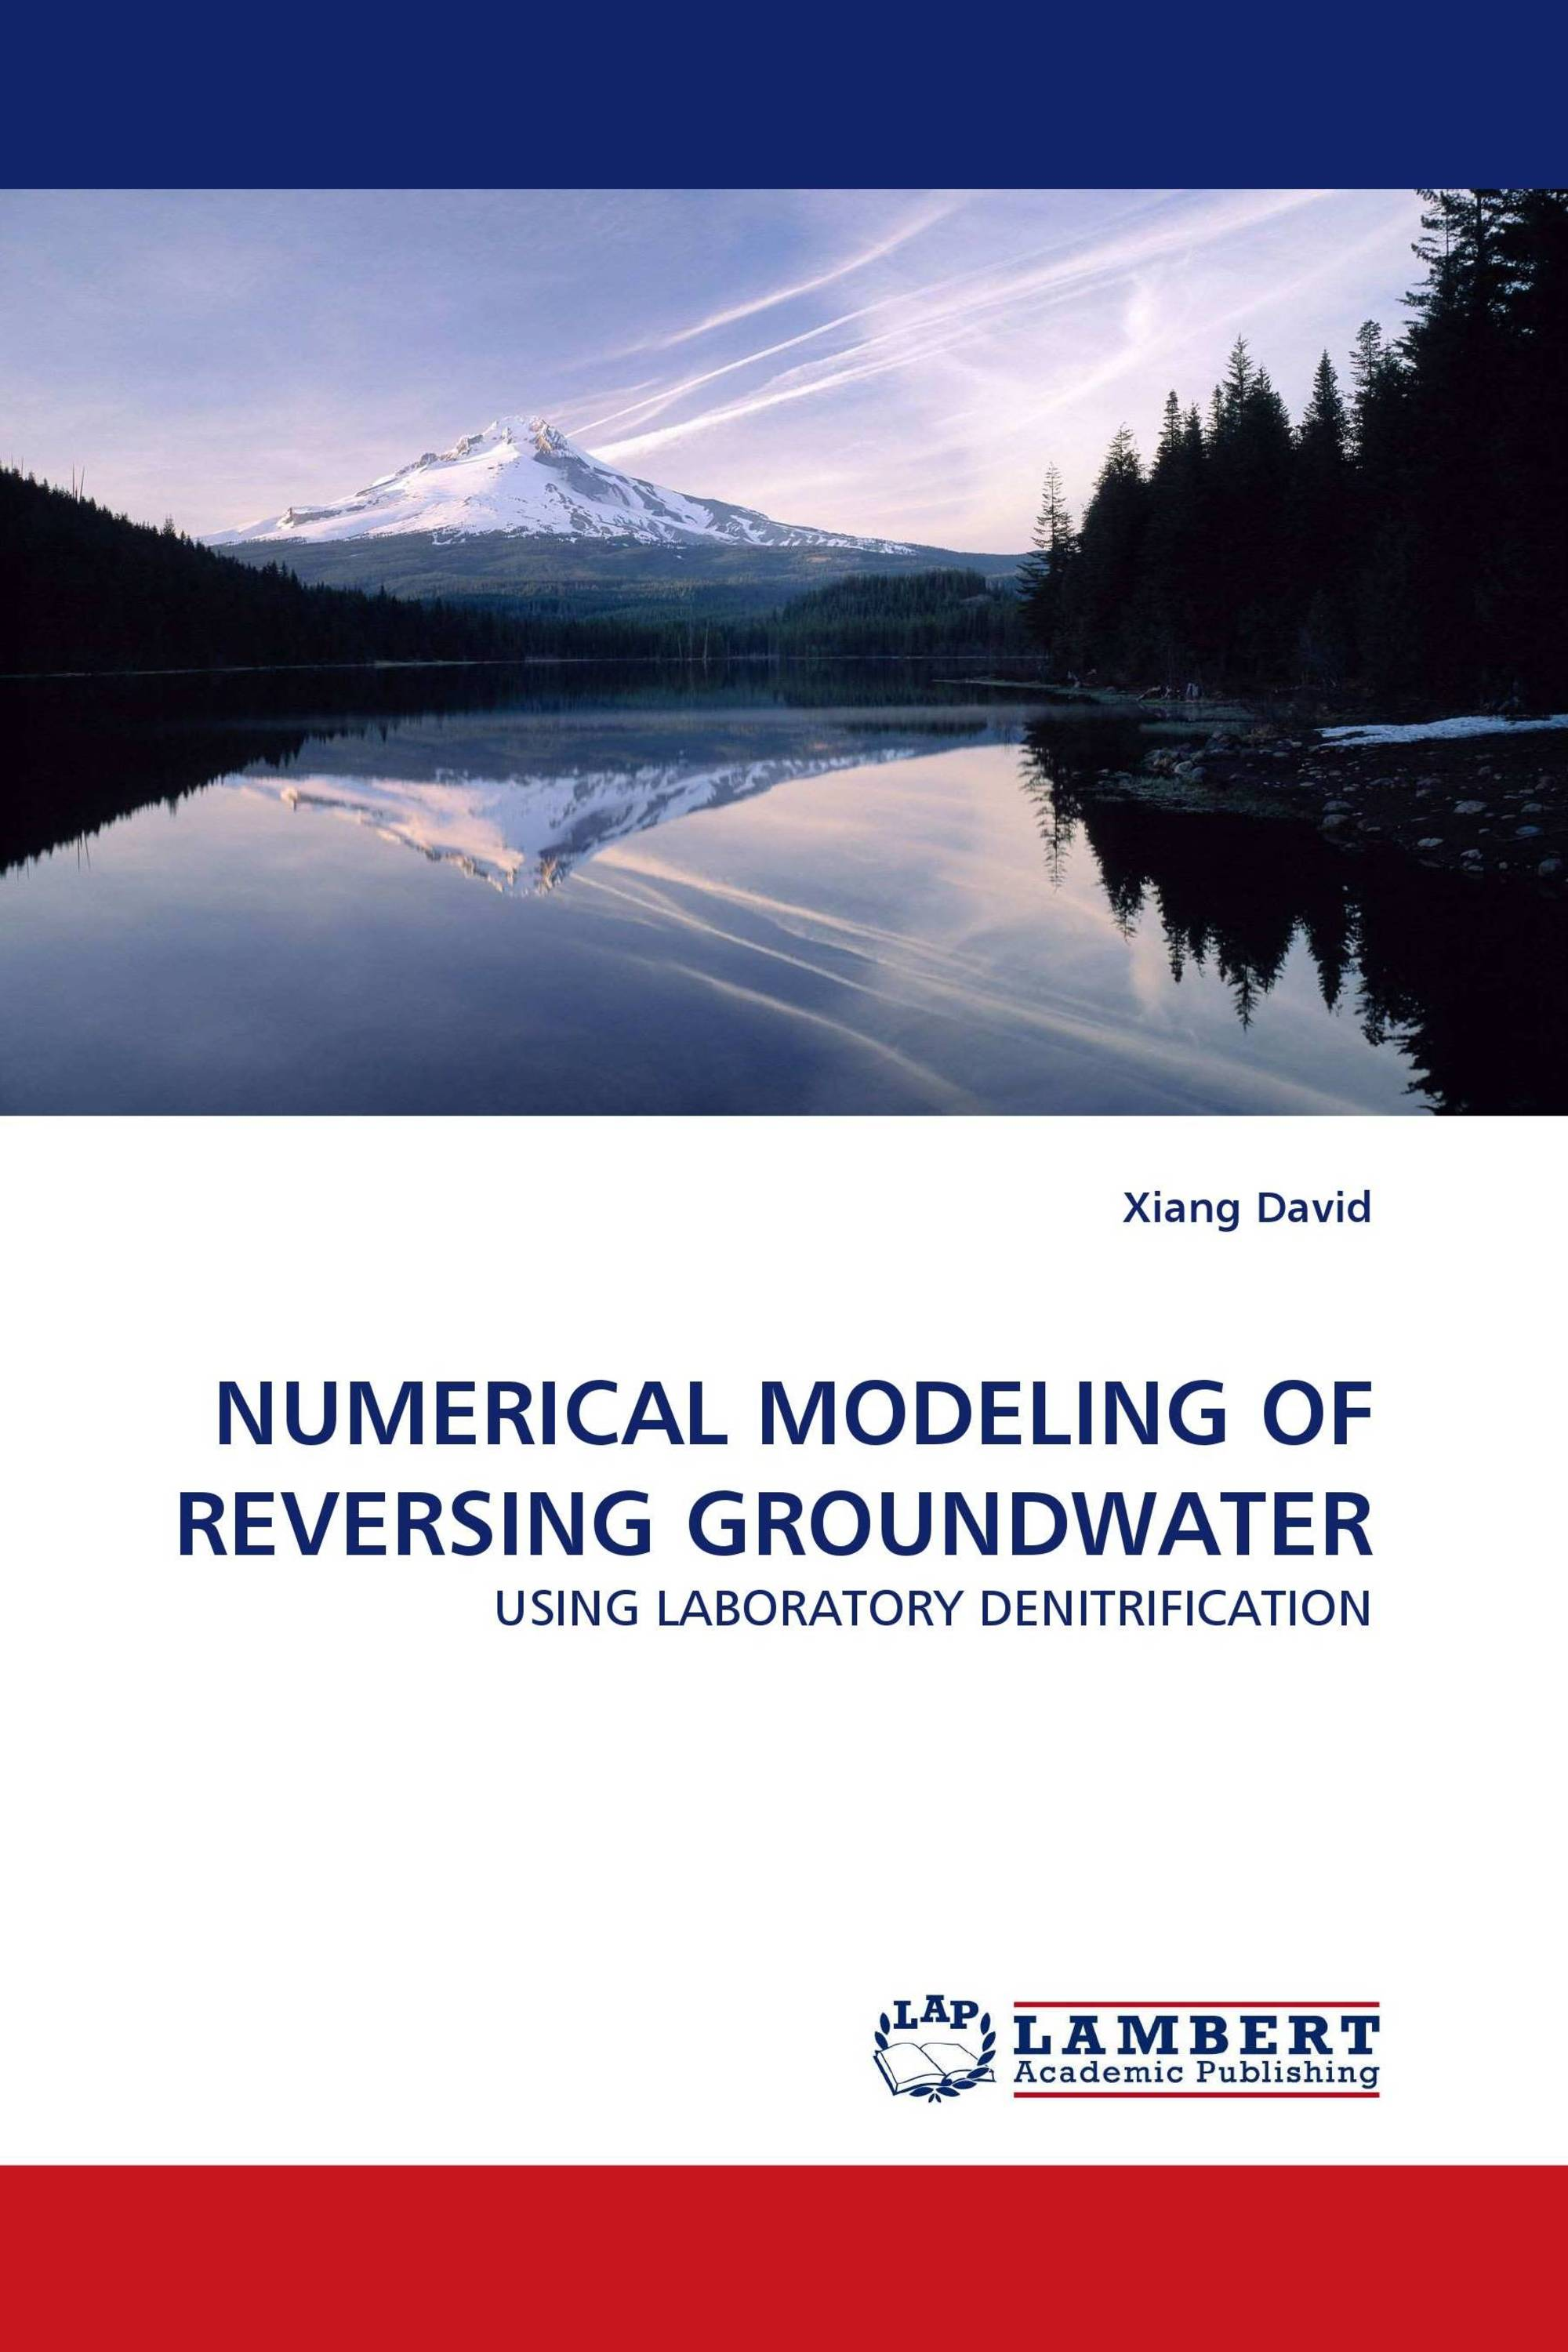 NUMERICAL MODELING OF REVERSING GROUNDWATER